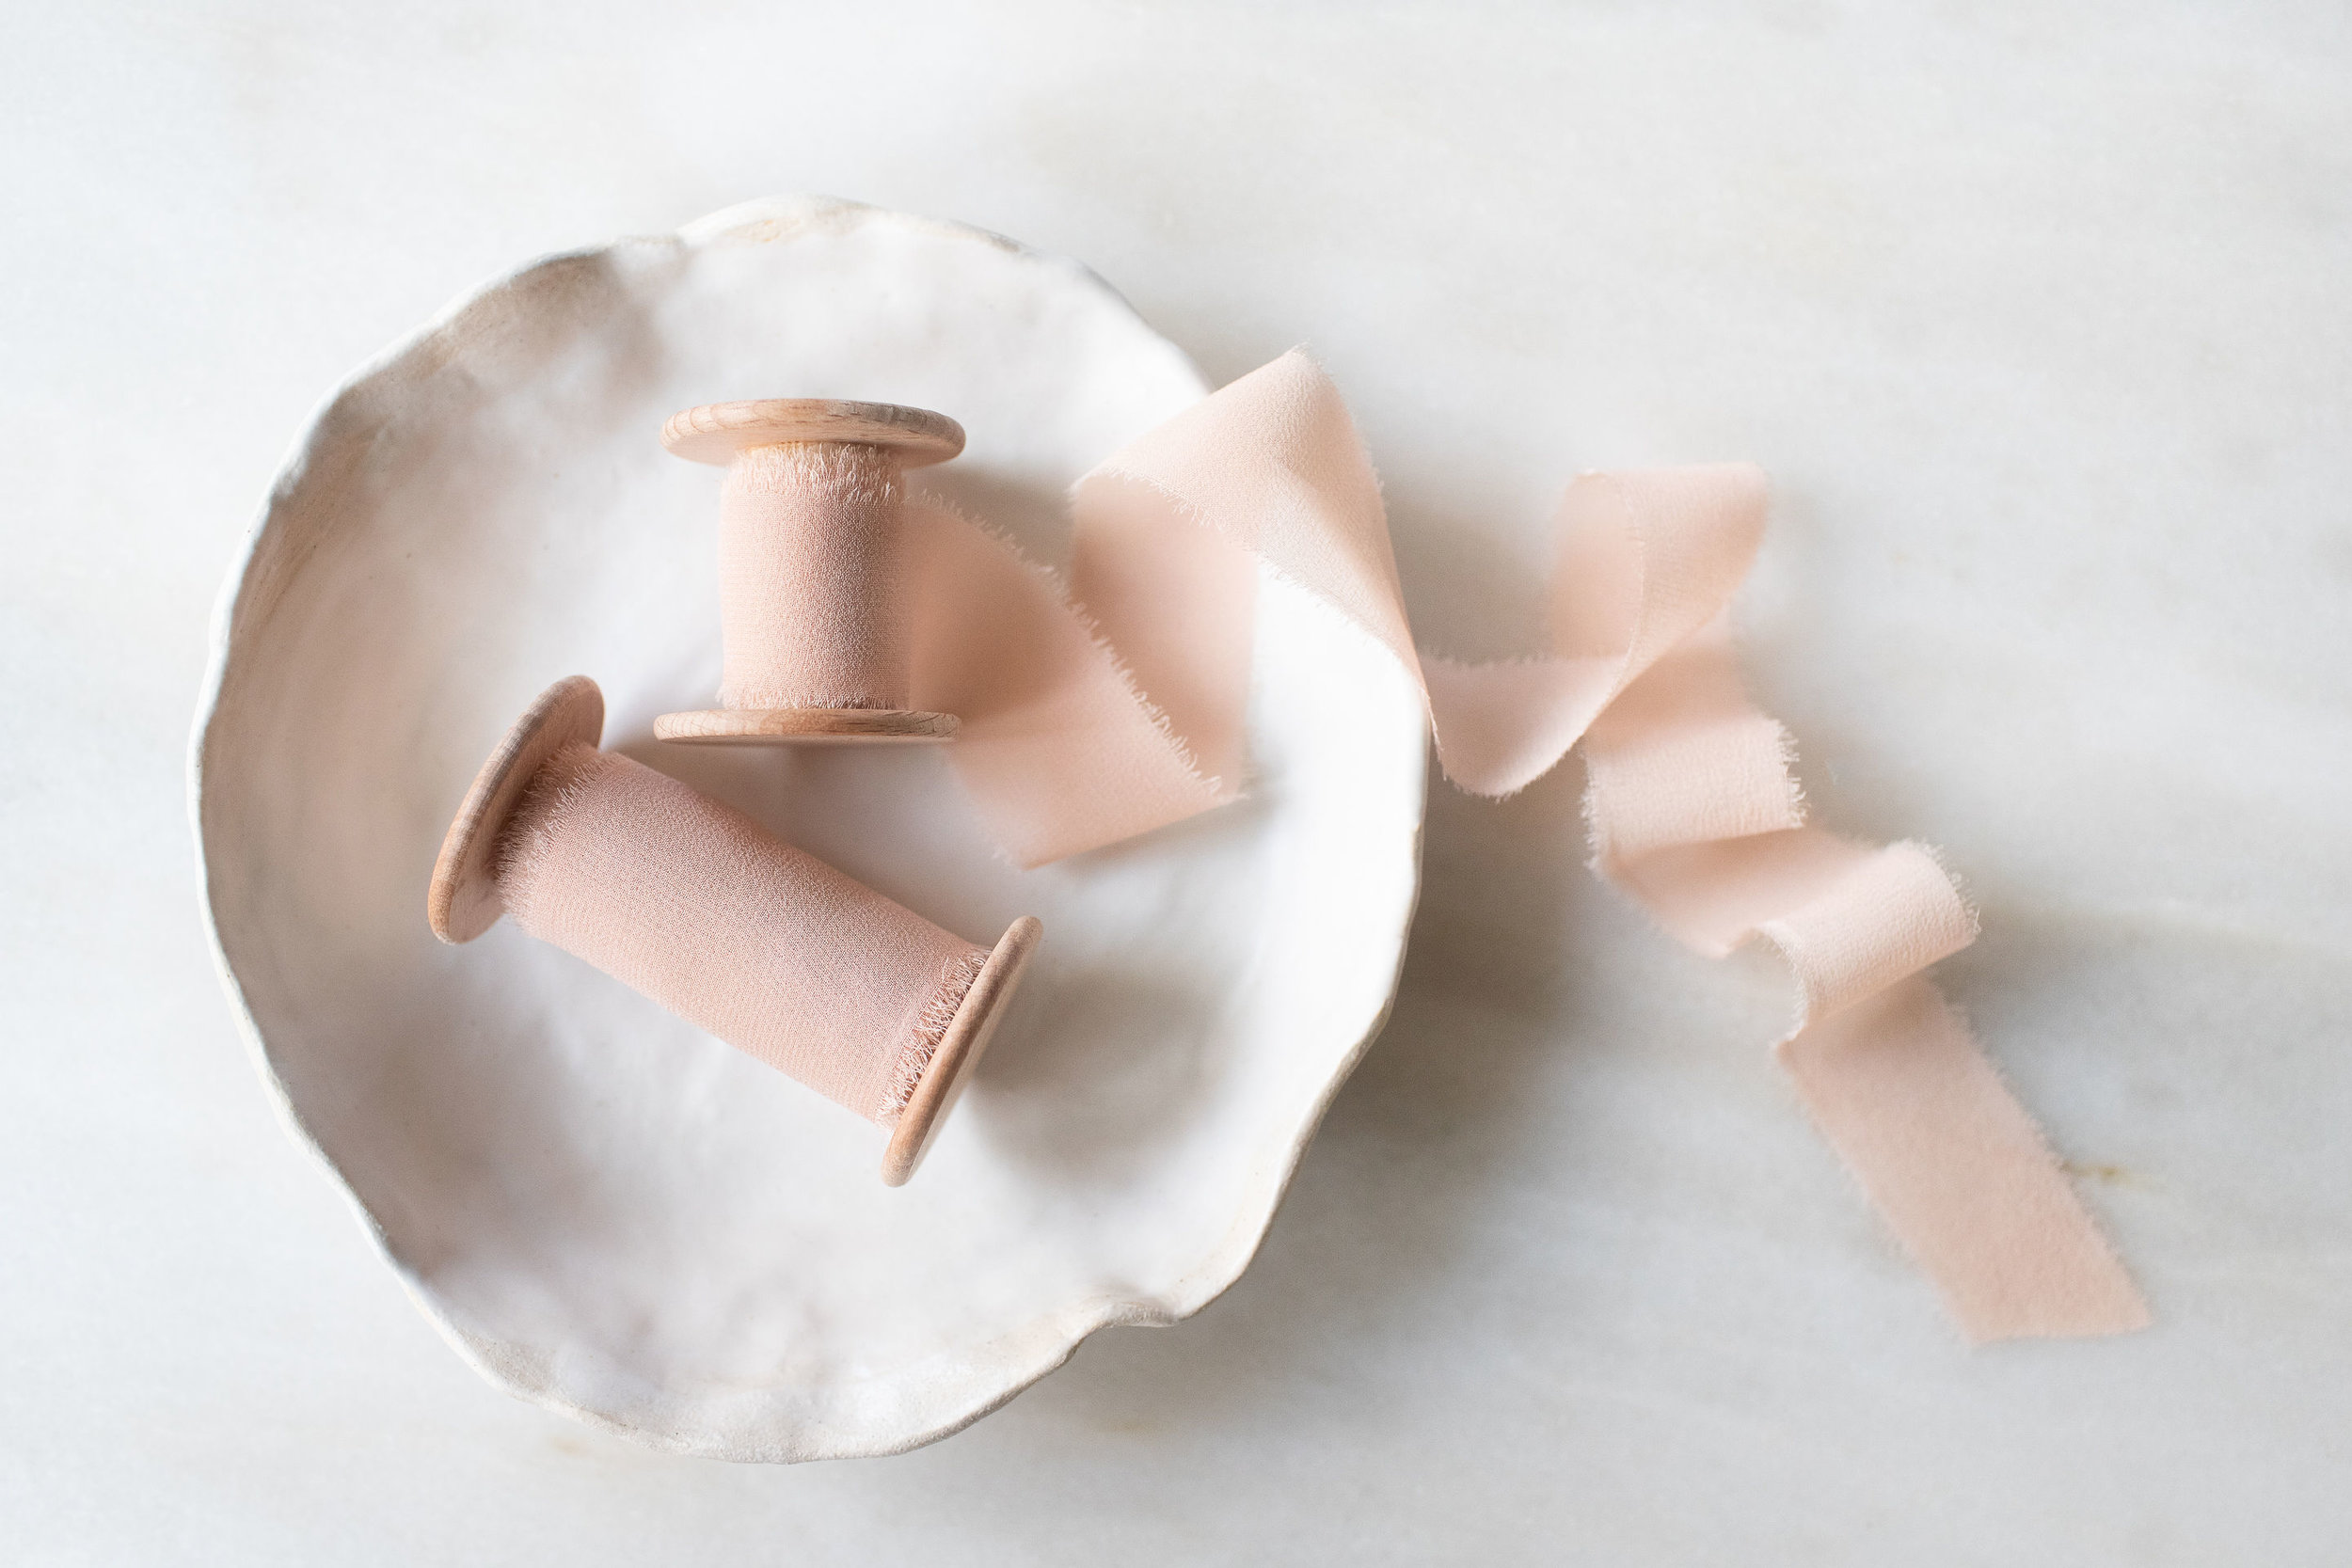 Silk Chiffon Ribbon - The perfect accompaniment to bouquets, invitations and styled shoot flat lays; delicate and dreamyAvailable in 2.5cm and 5cm (1 and 2 inch) widths.